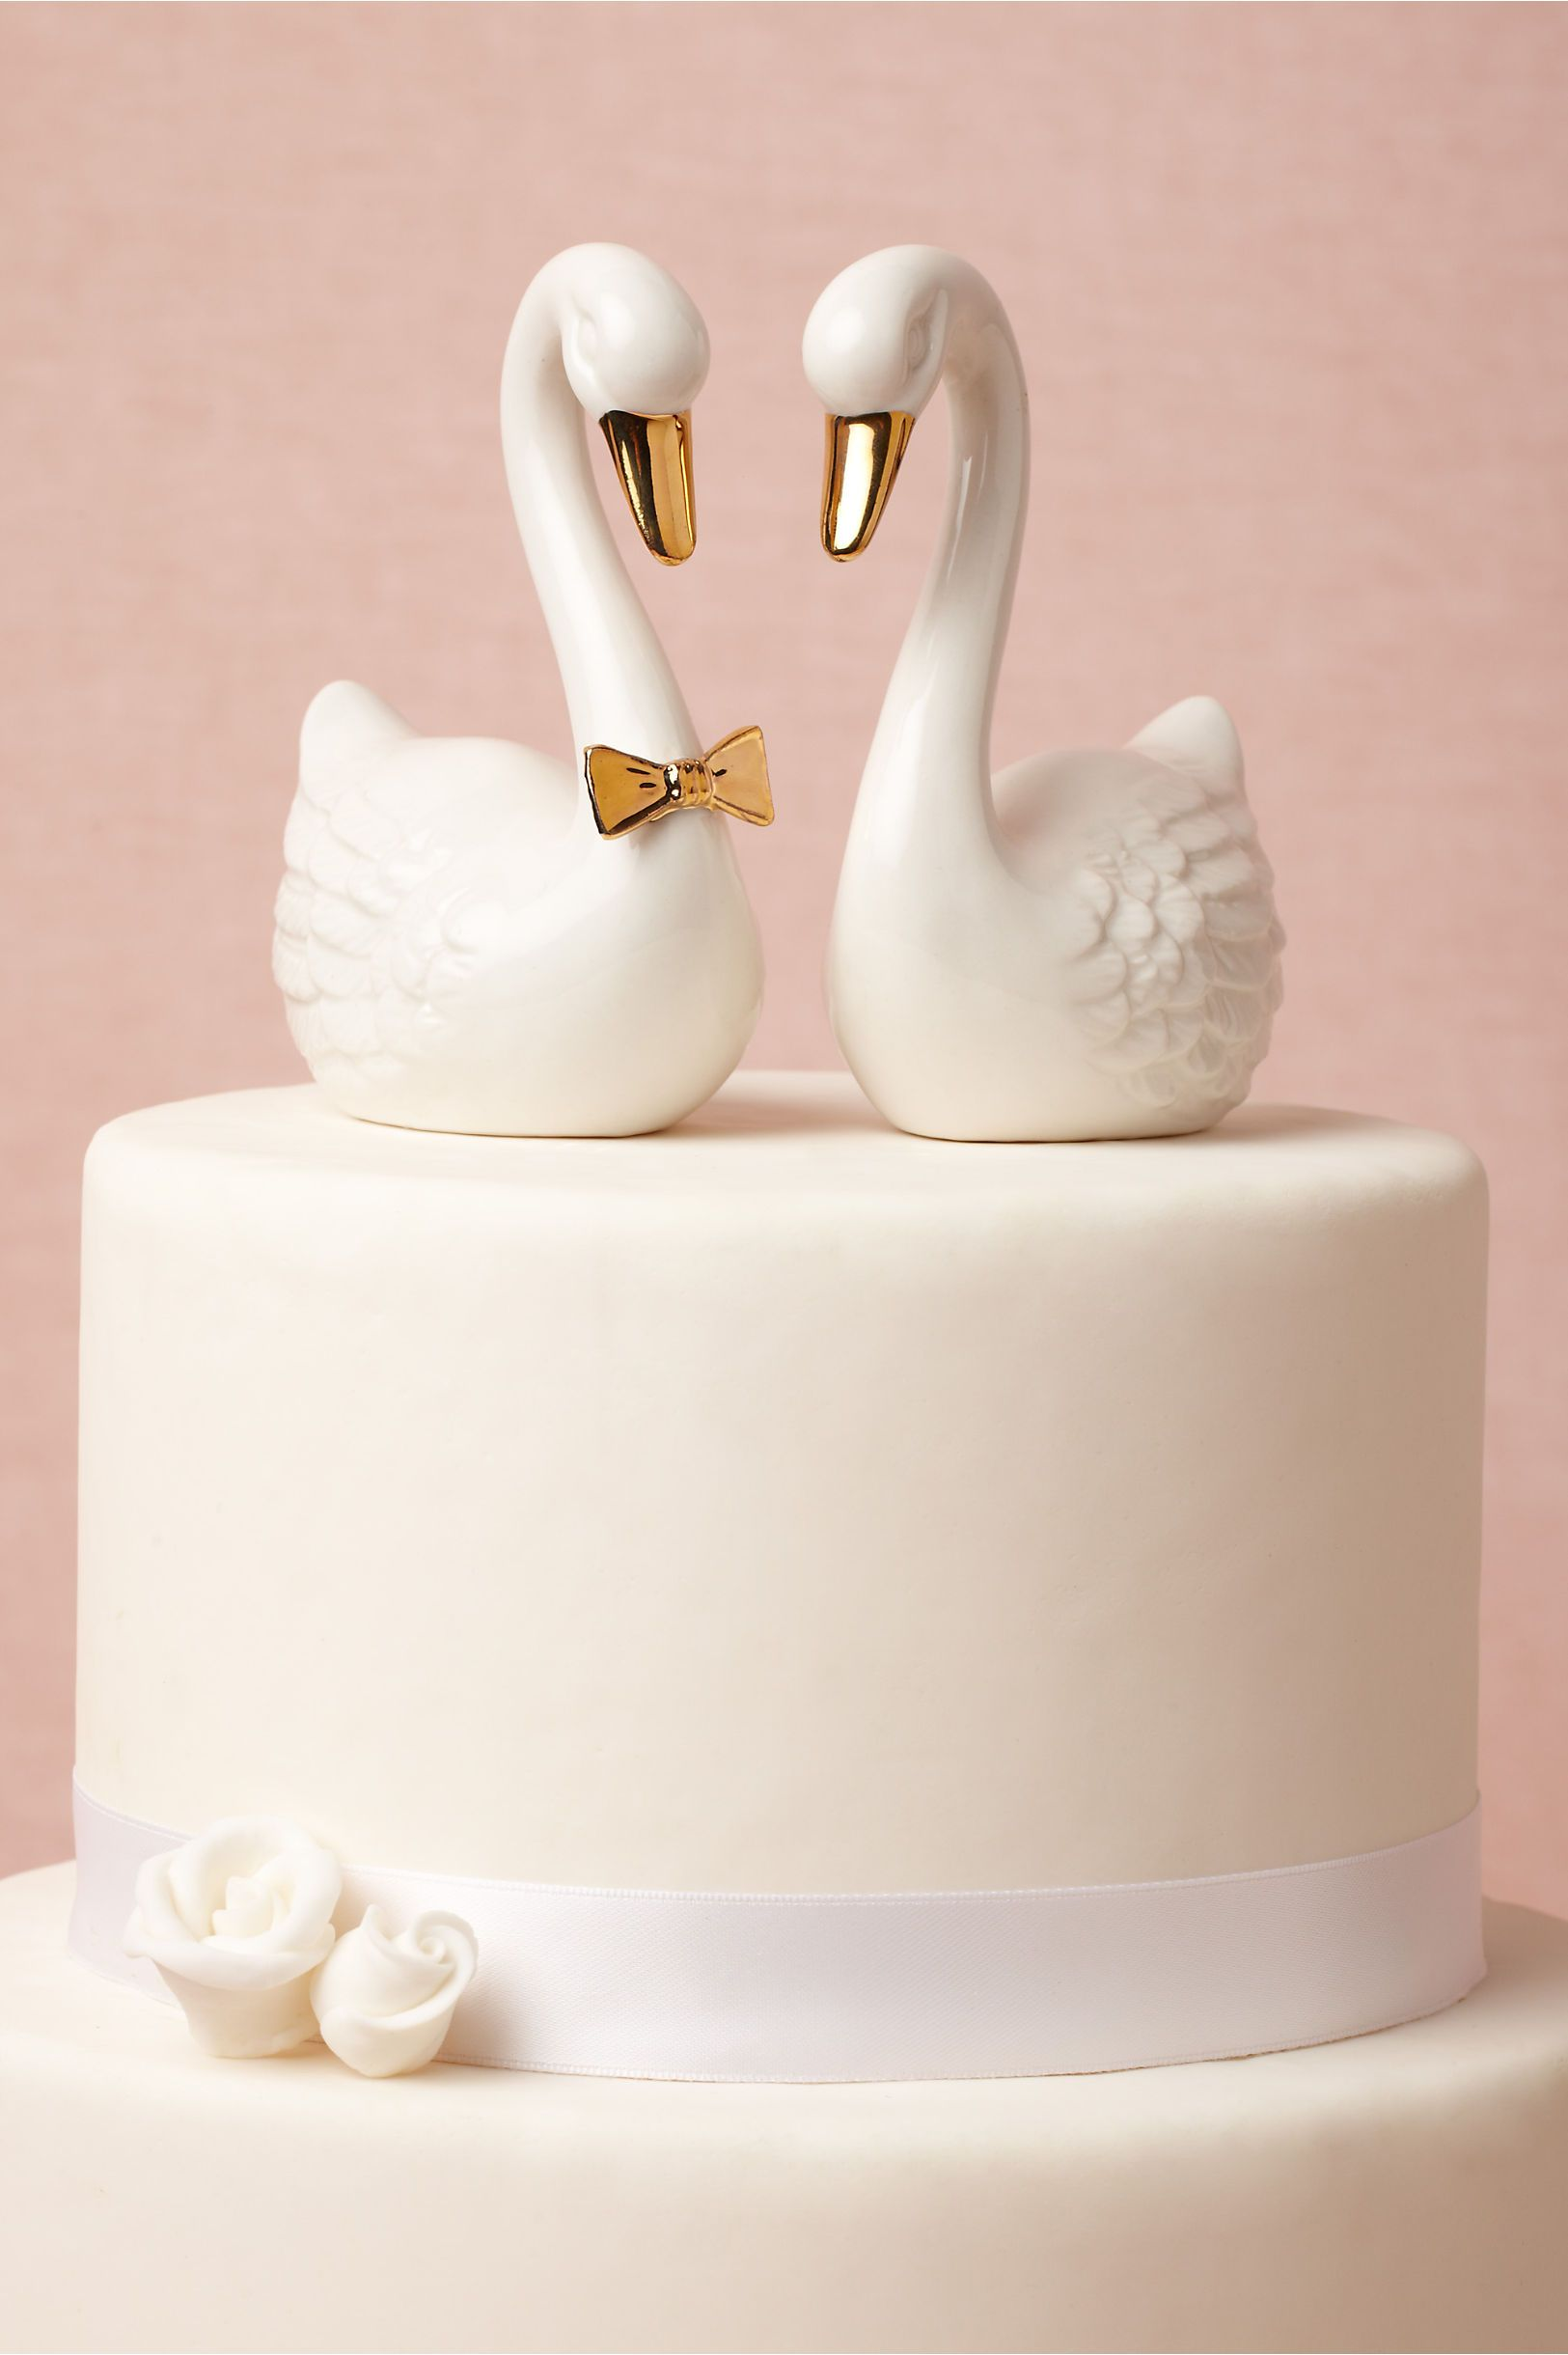 Cygnus cake topper from bhldn a touch of whimsy pinterest cygnus cake topper from bhldn biocorpaavc Images